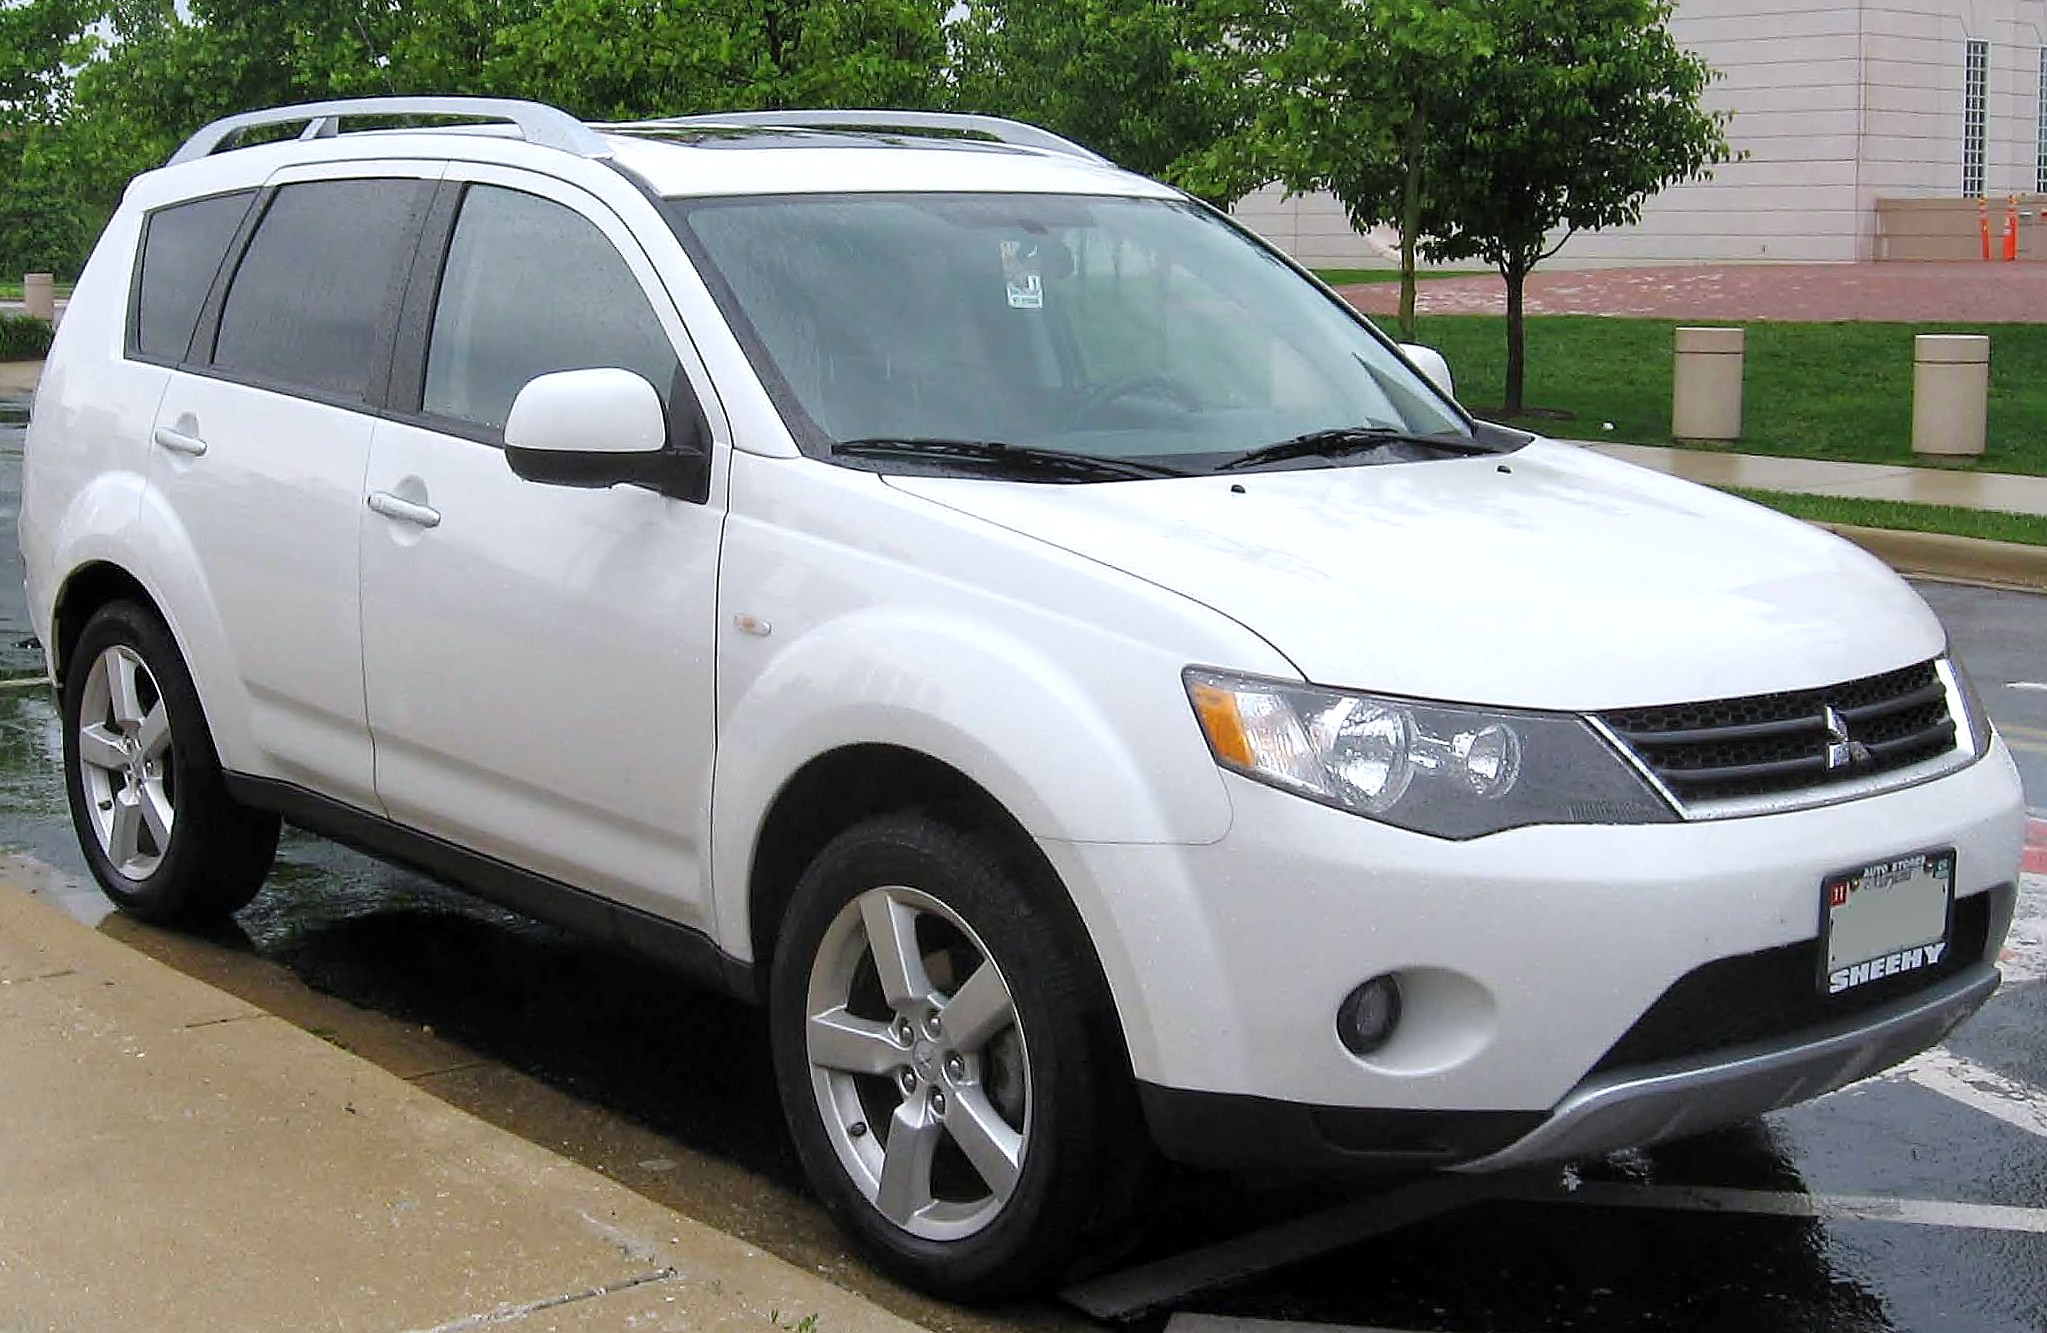 File:2nd Mitsubishi Outlander.jpg - Wikimedia Commons